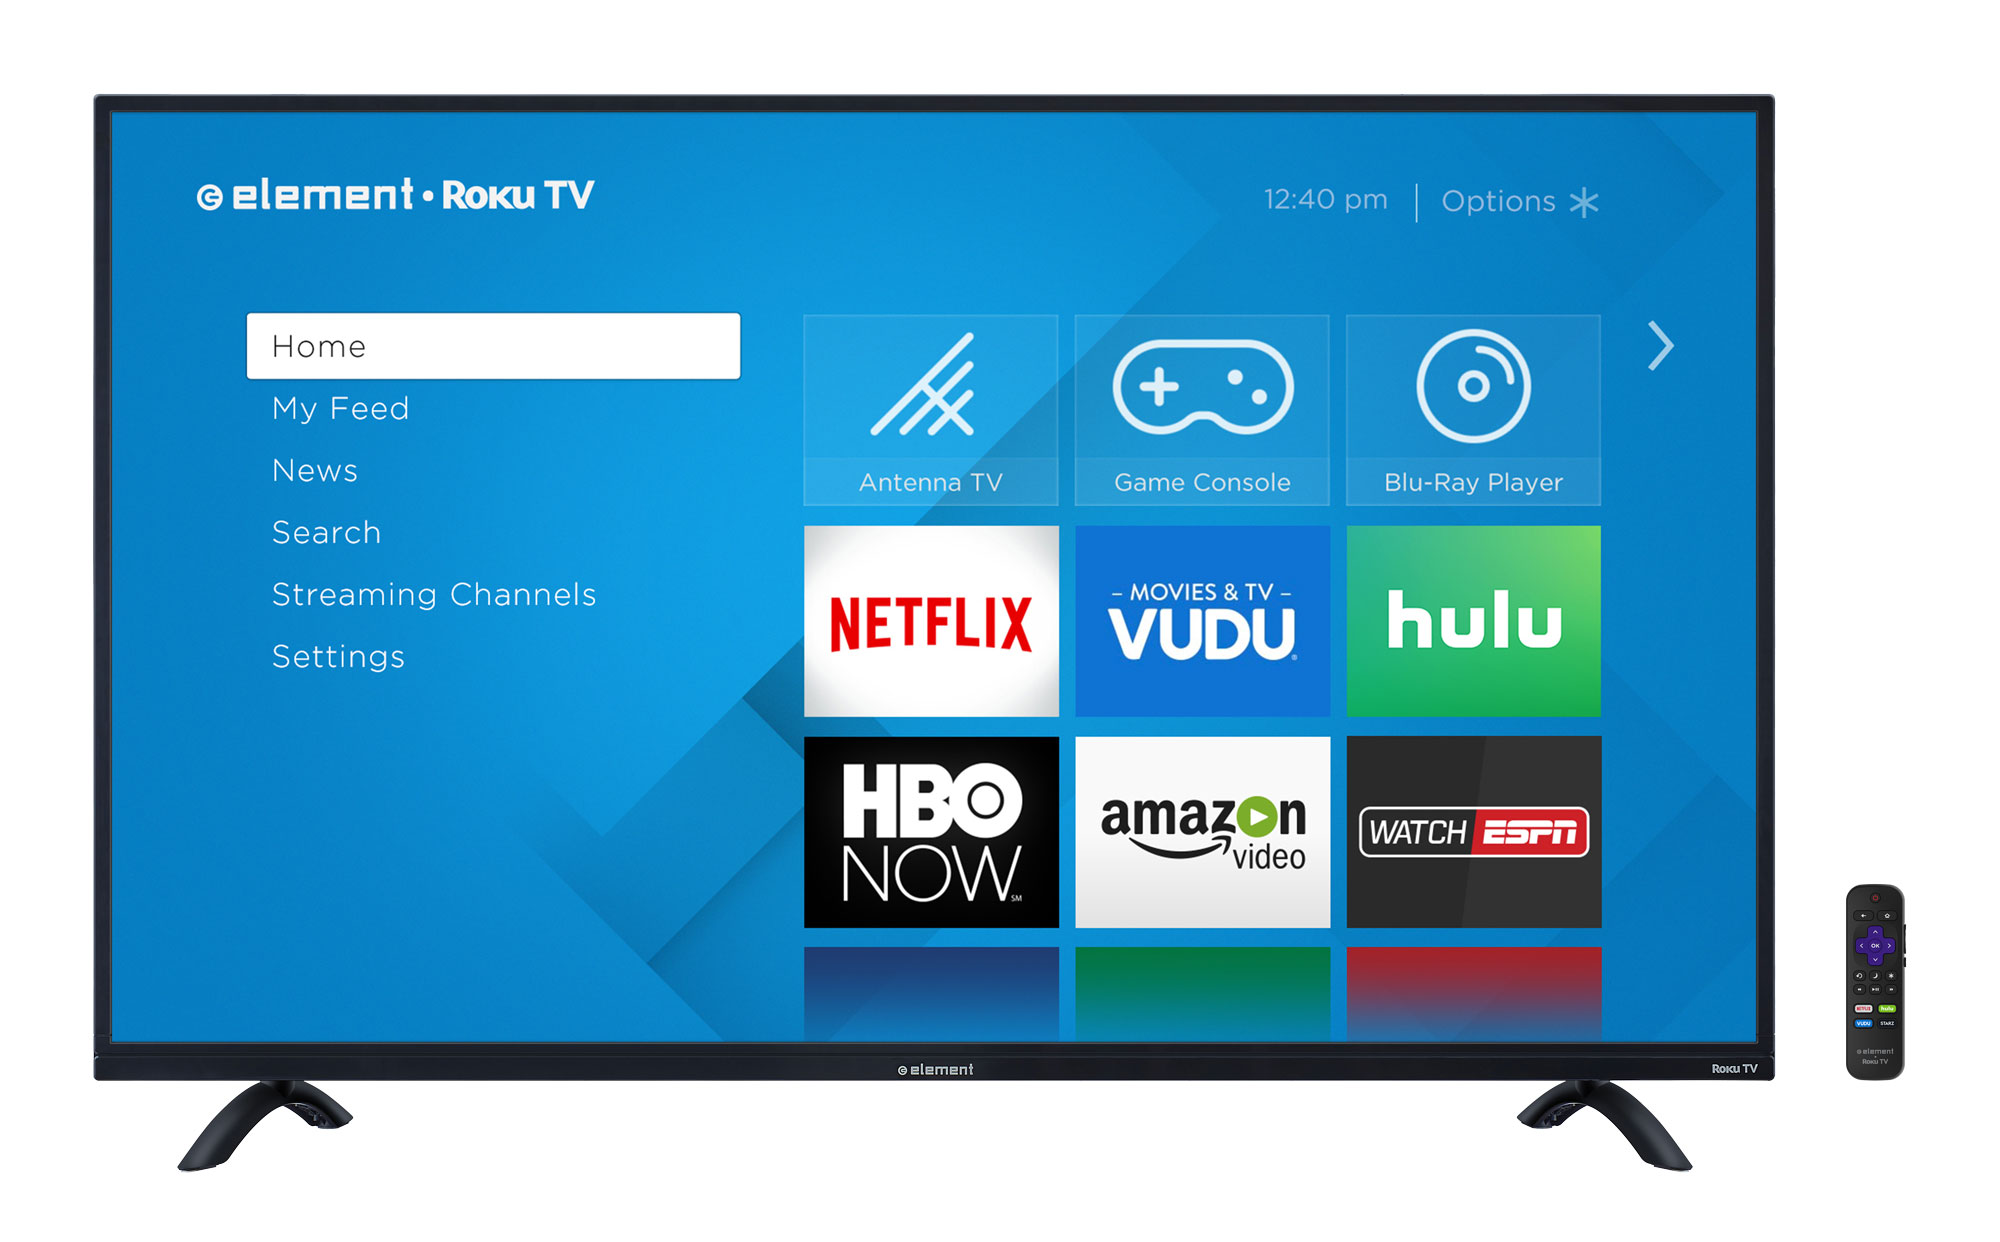 Black Friday specials on streaming devices includes Roku, Amazon Fire, Chromecast